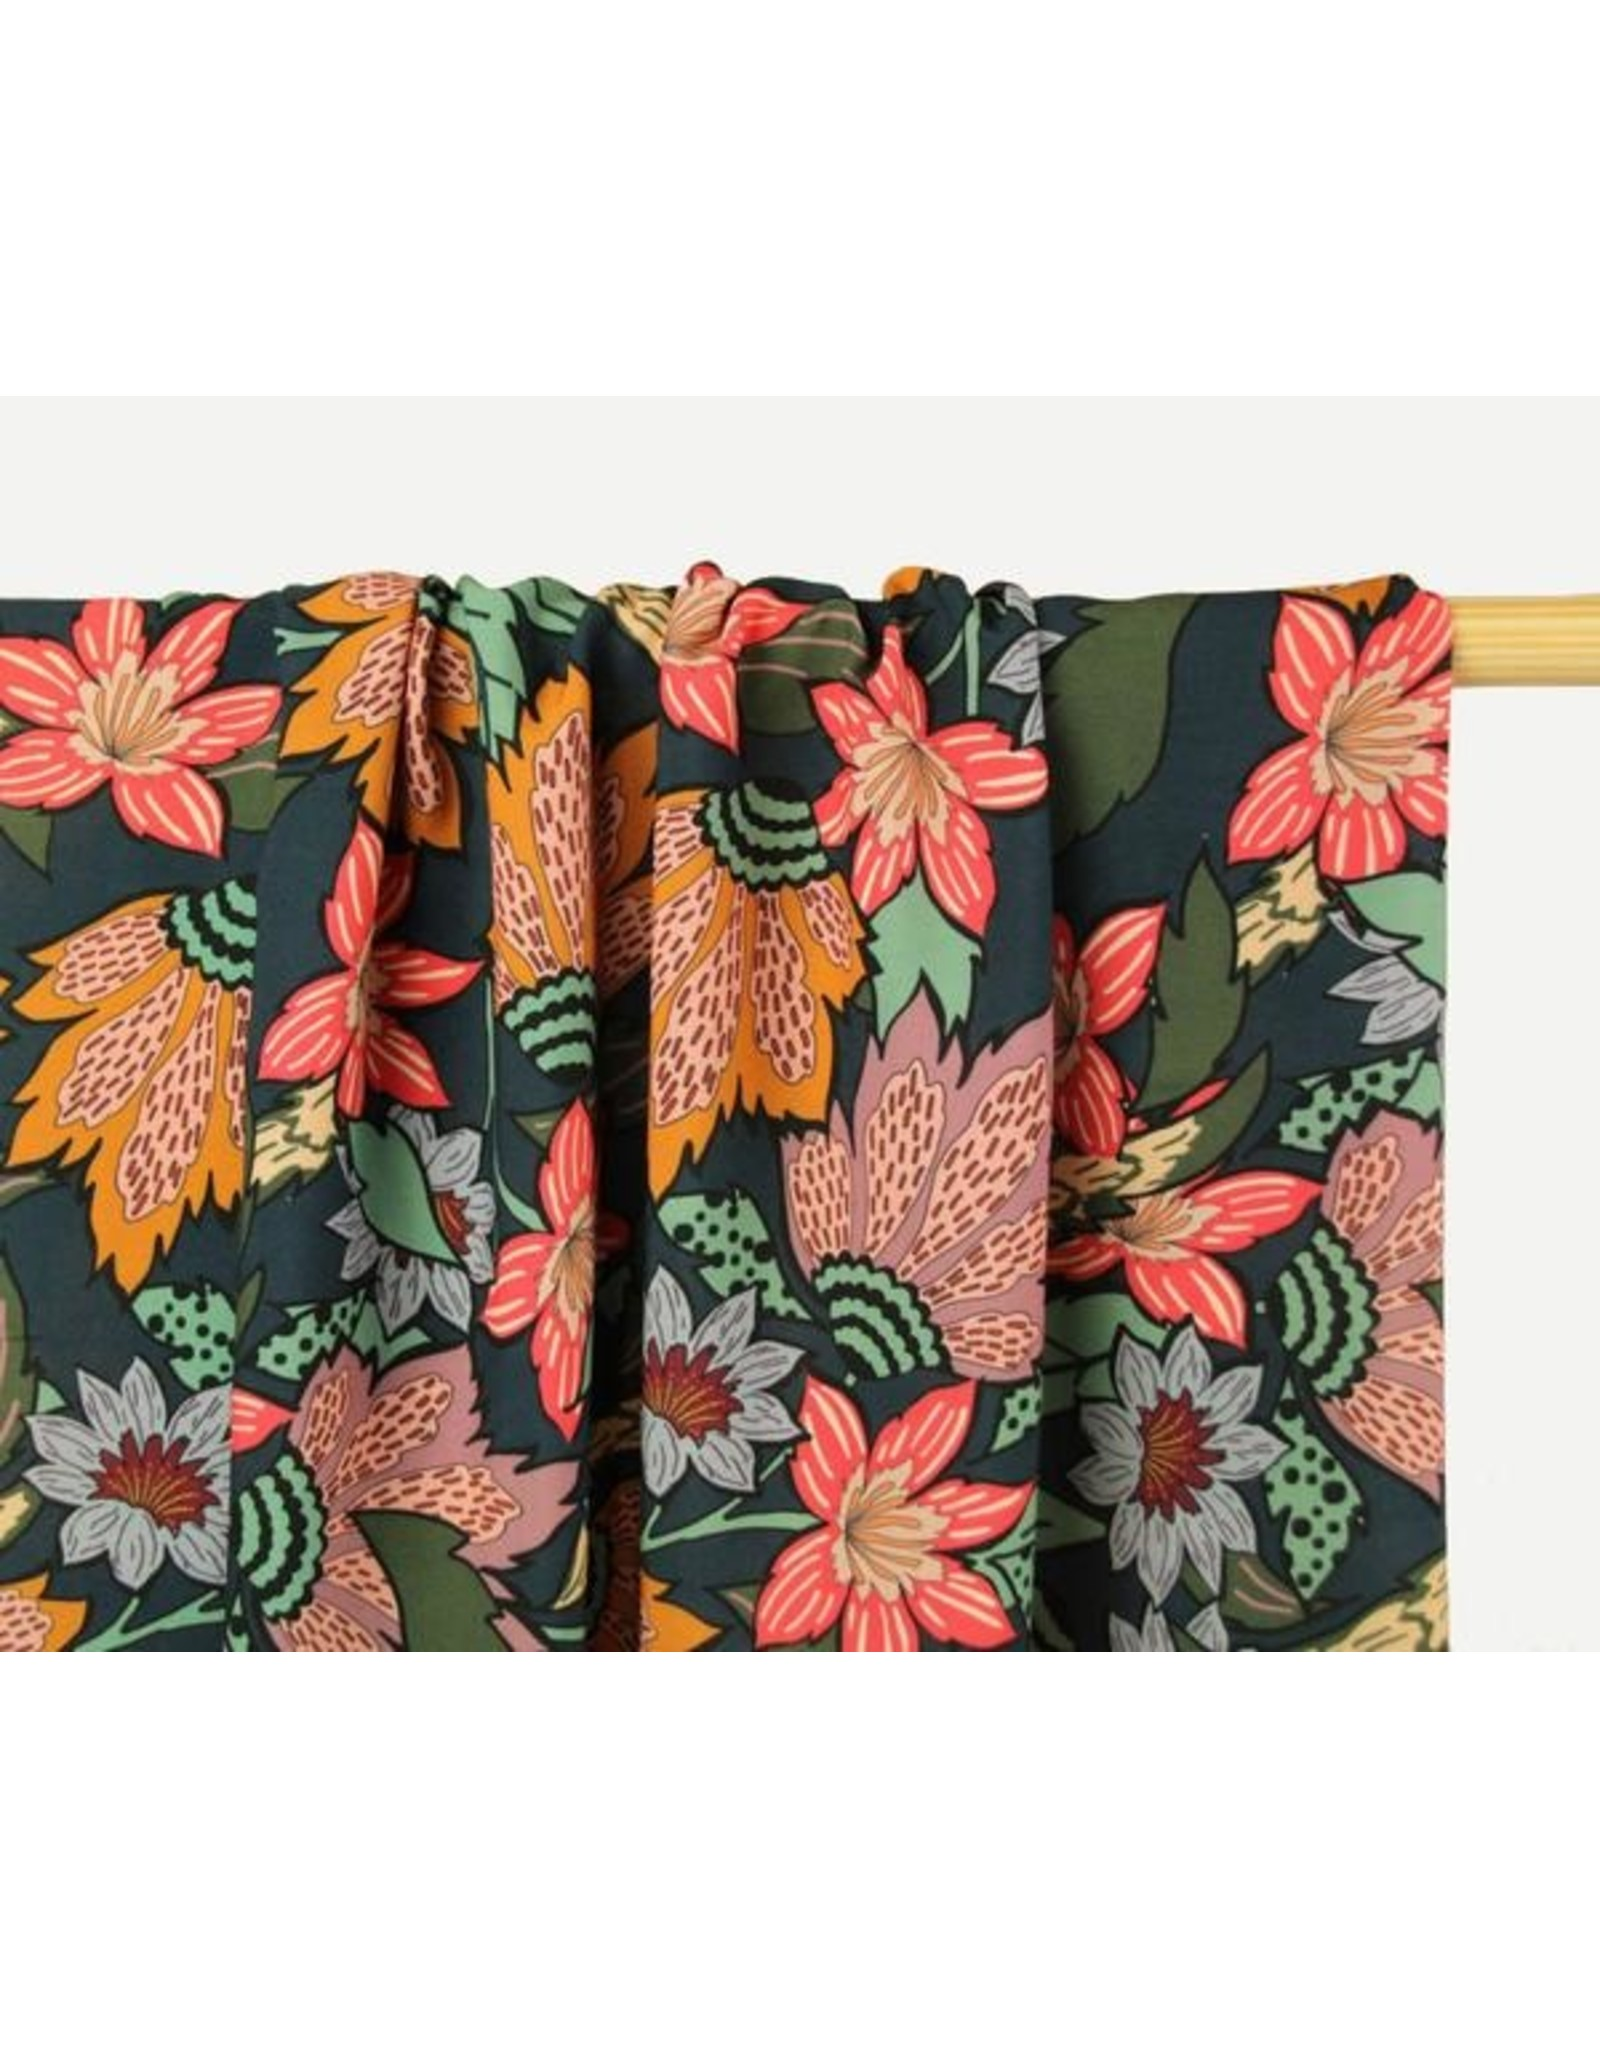 Atelier Jupe Viscose with large flower print COUPON 6cm